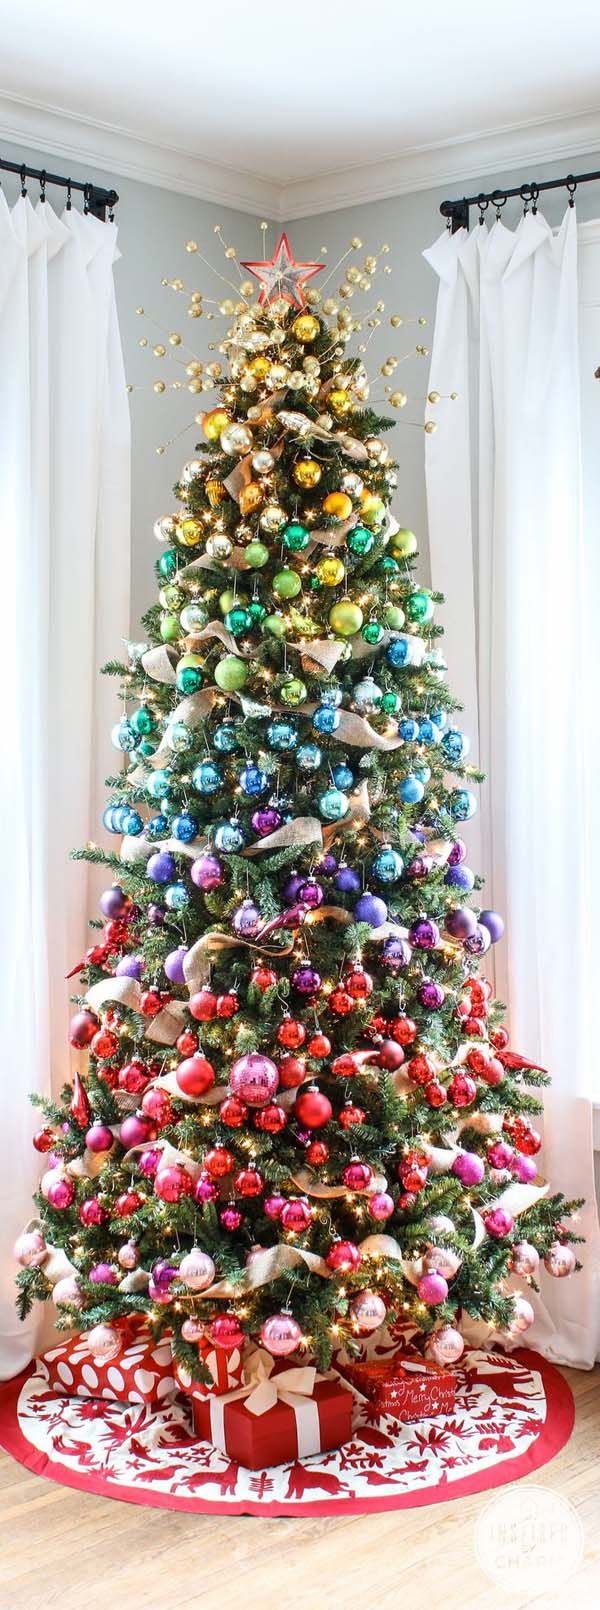 Beautiful Christmas Tree Decorations Ideas   Christmas   Pinterest     50 Most Beautiful Christmas Trees   Christmas Celebrations